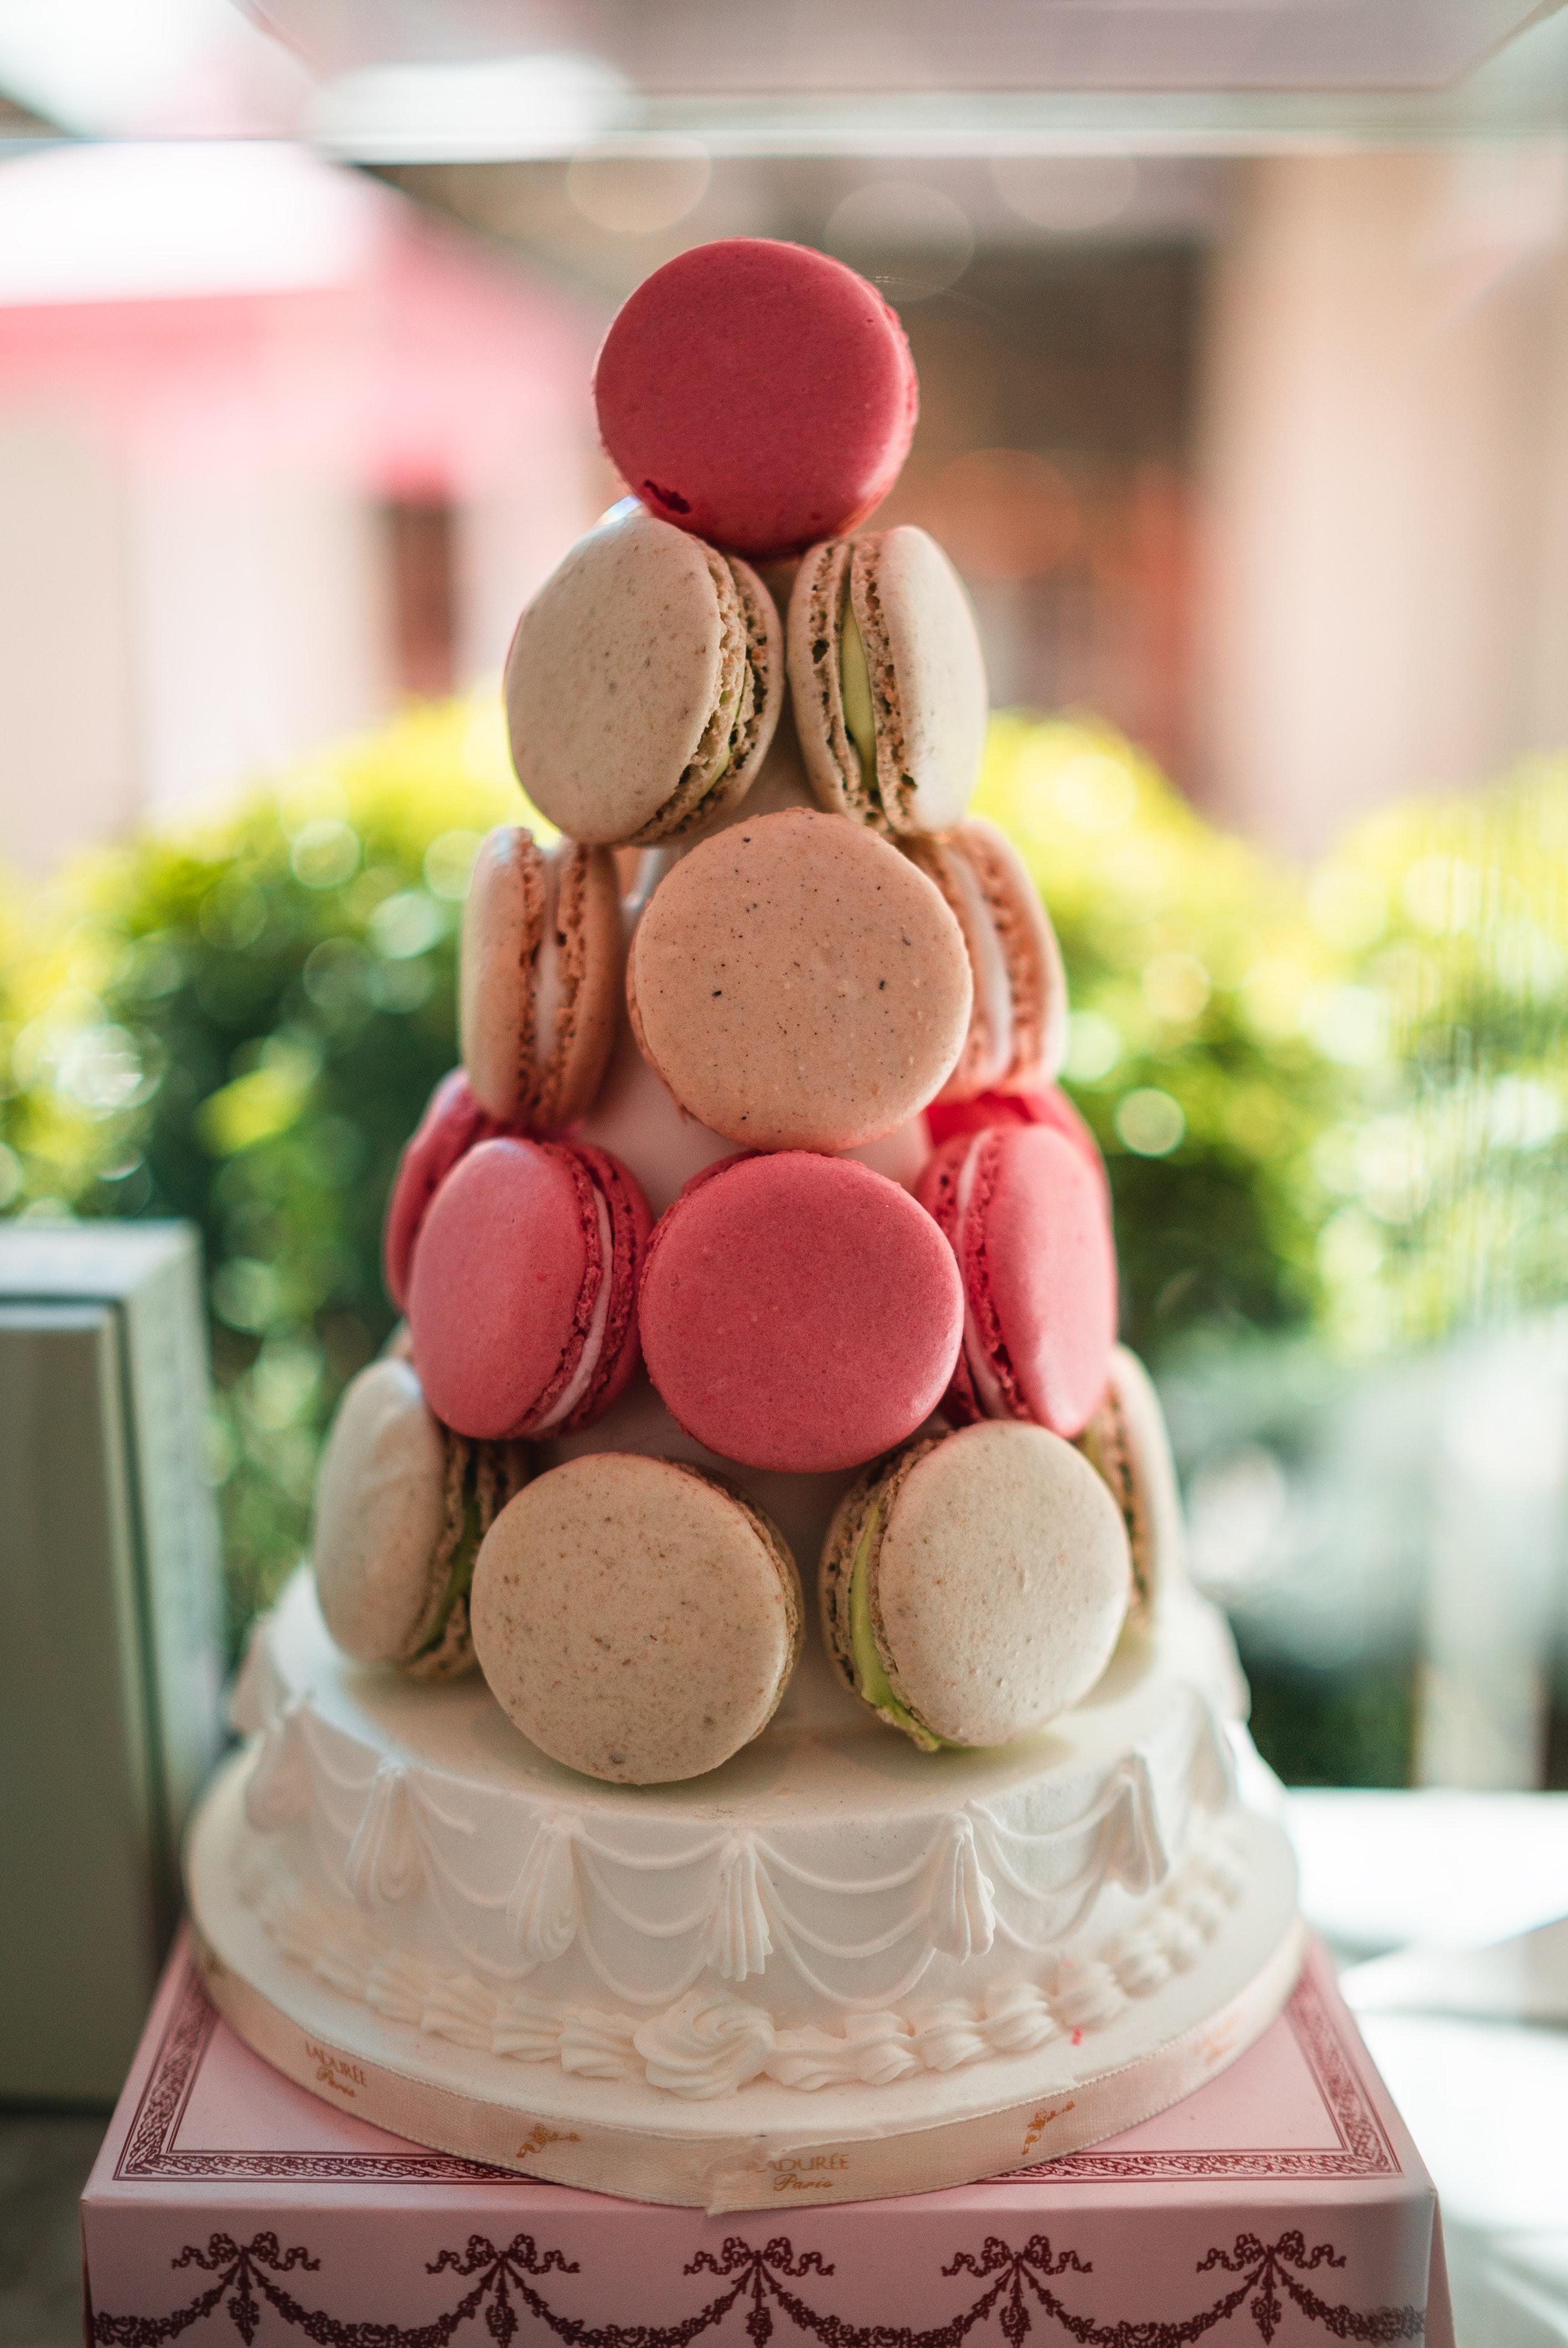 shift-tilt lens photography of French macaroons